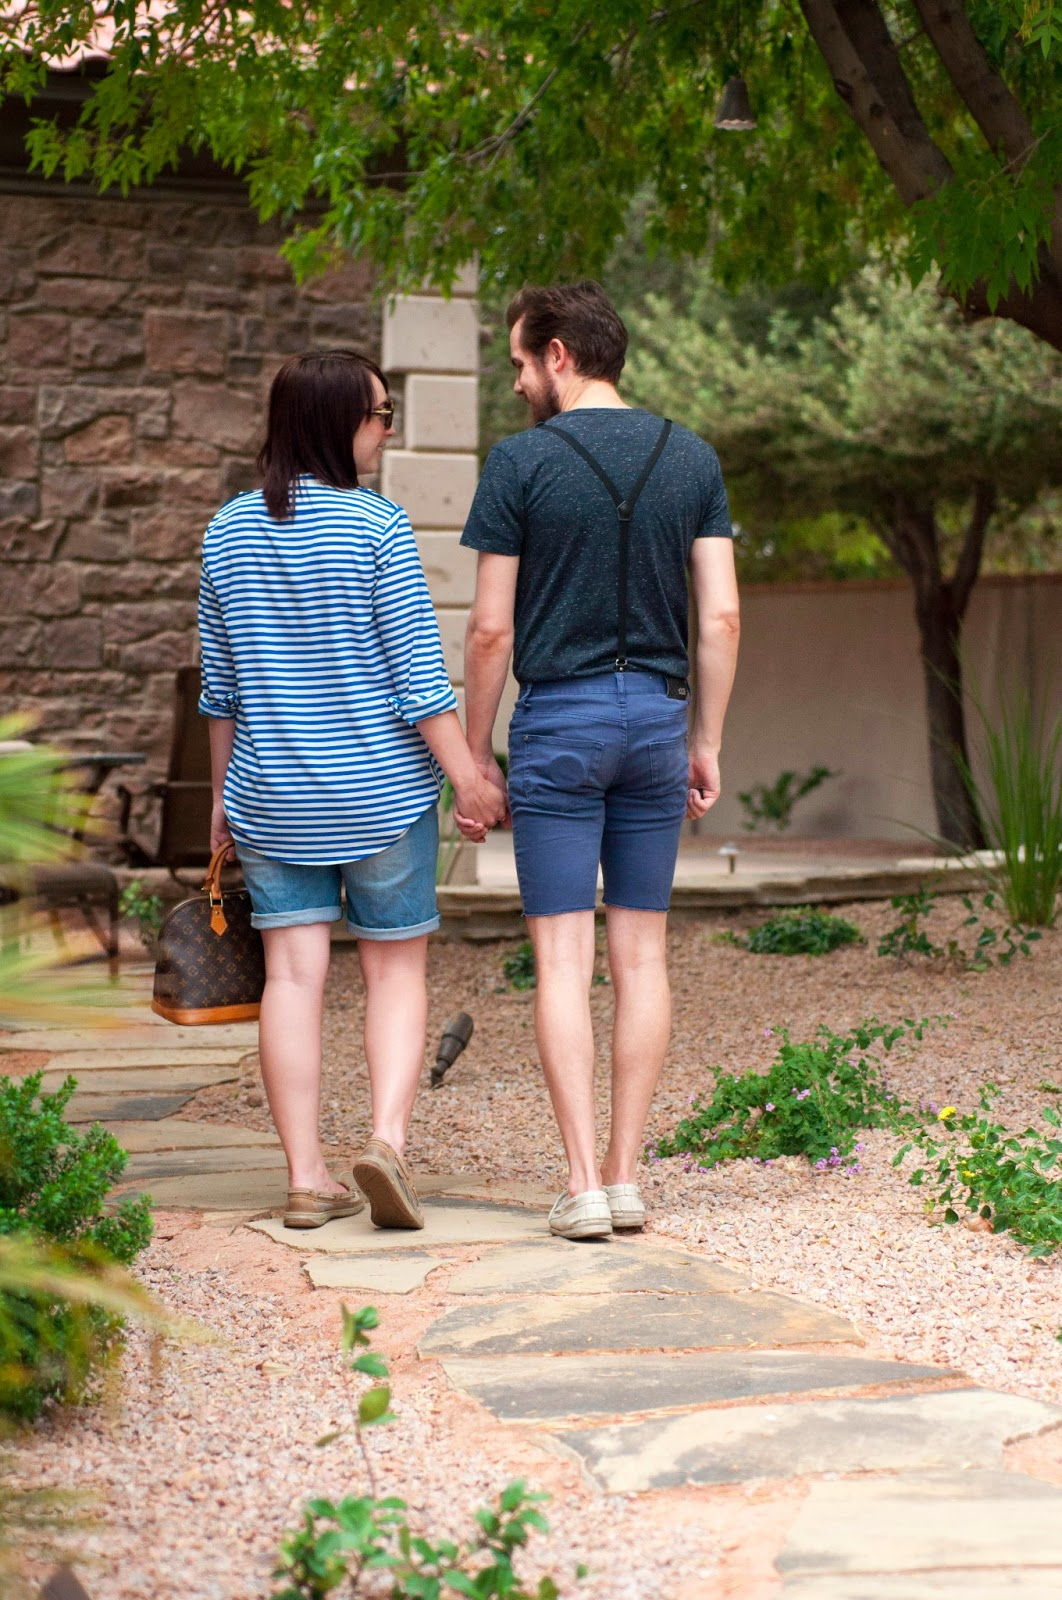 couples, couples fashion, kelseybang.com, calvin klein, stripes, suspenders, calvin klein striped shirt, sperry topsider, matching shoes